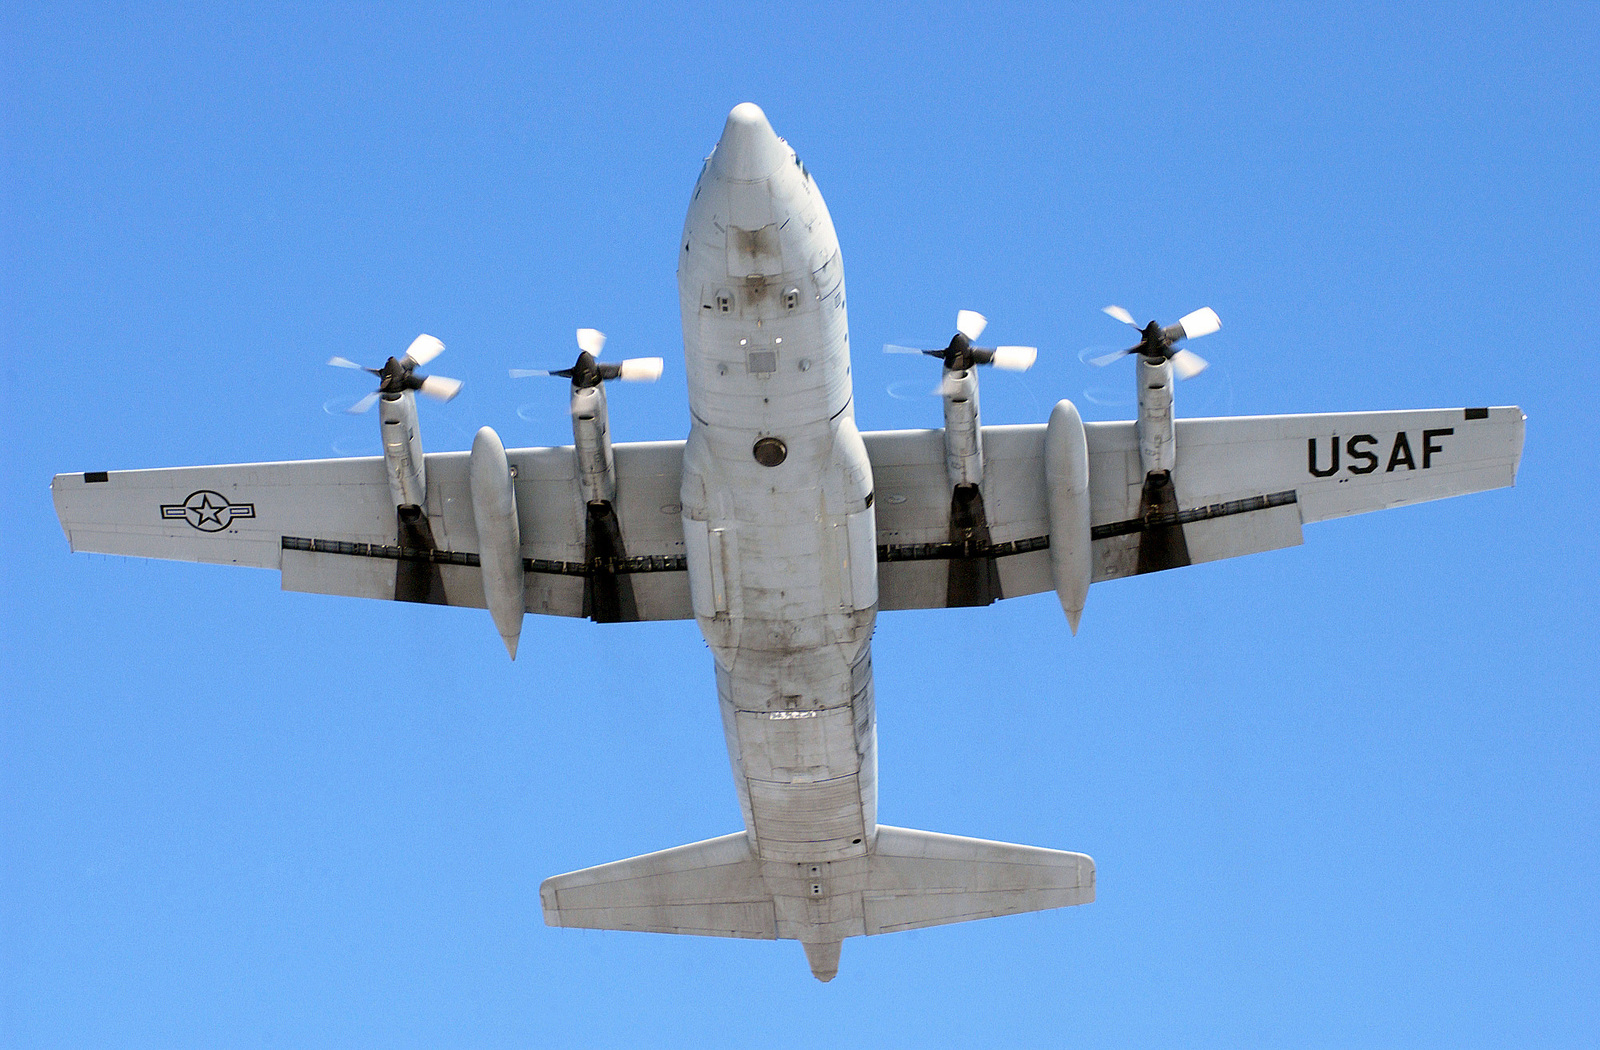 A US Air Force (USAF) C-130 Hercules aircraft from the 127th Wing, Michigan Air National Guard (ANG) flies directly over the camera at Selfridge Air National Guard Base (ANGB), Michigan (MI), during a training mission in support of Operation NOBLE EAGLE